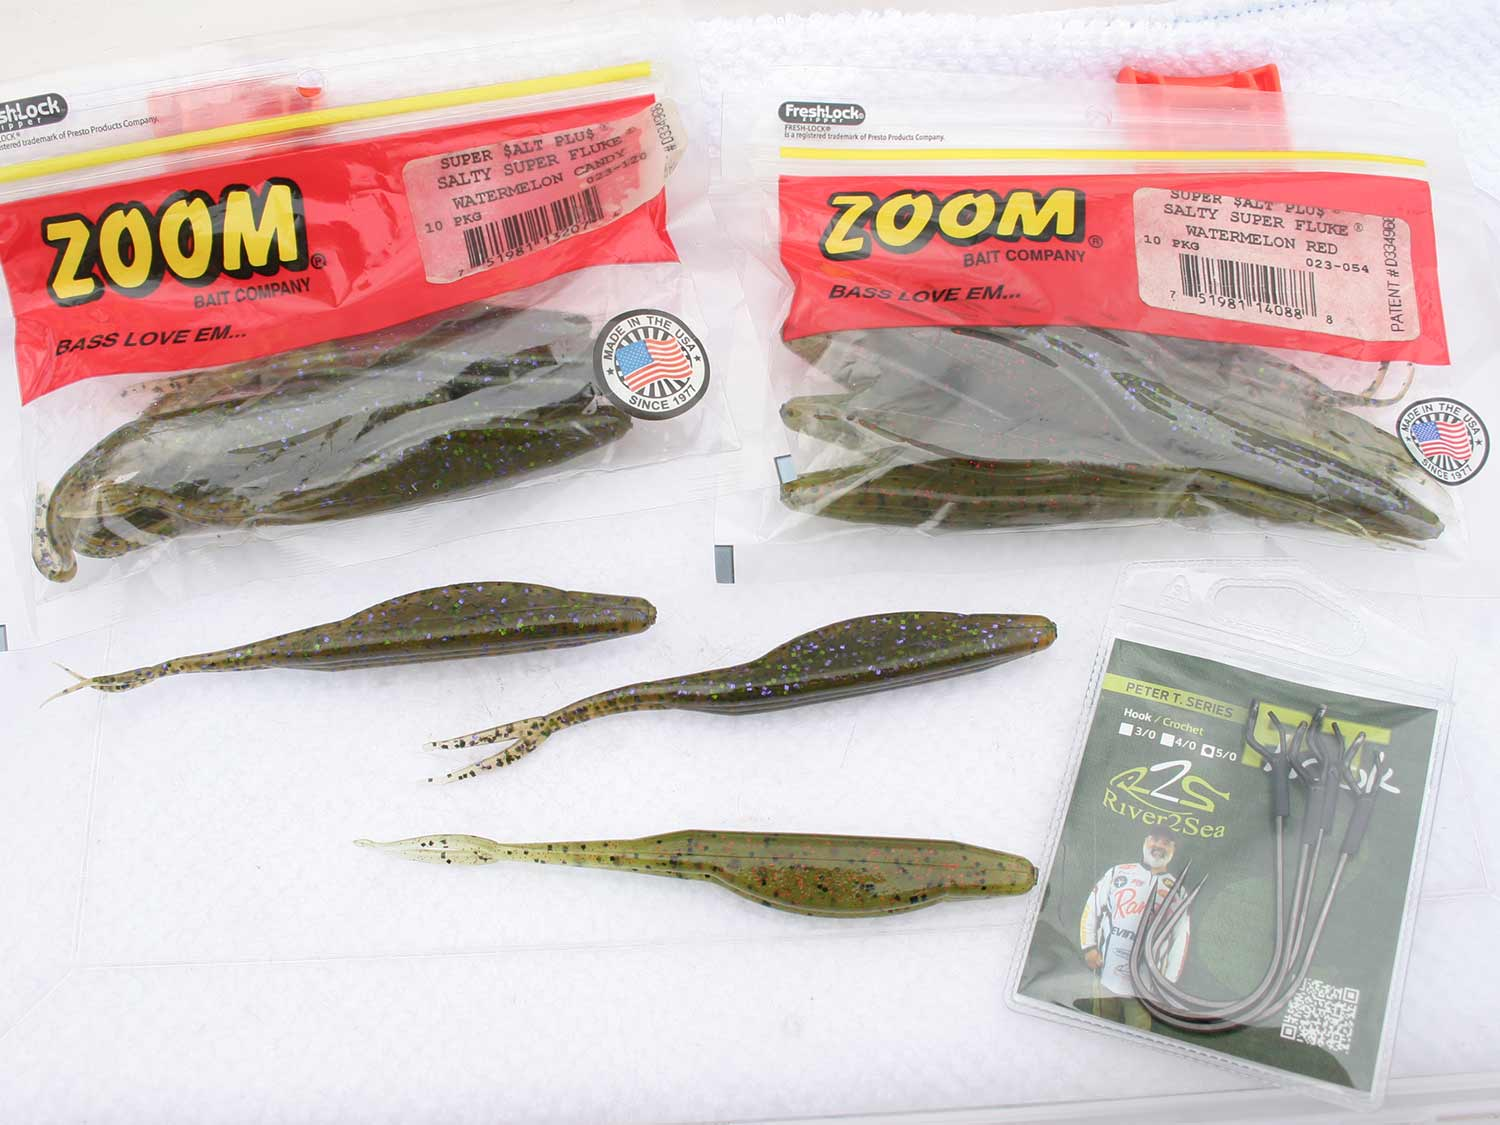 16 Proven Bass Lures To Fill Your Spring Tackle Box Outdoor Life